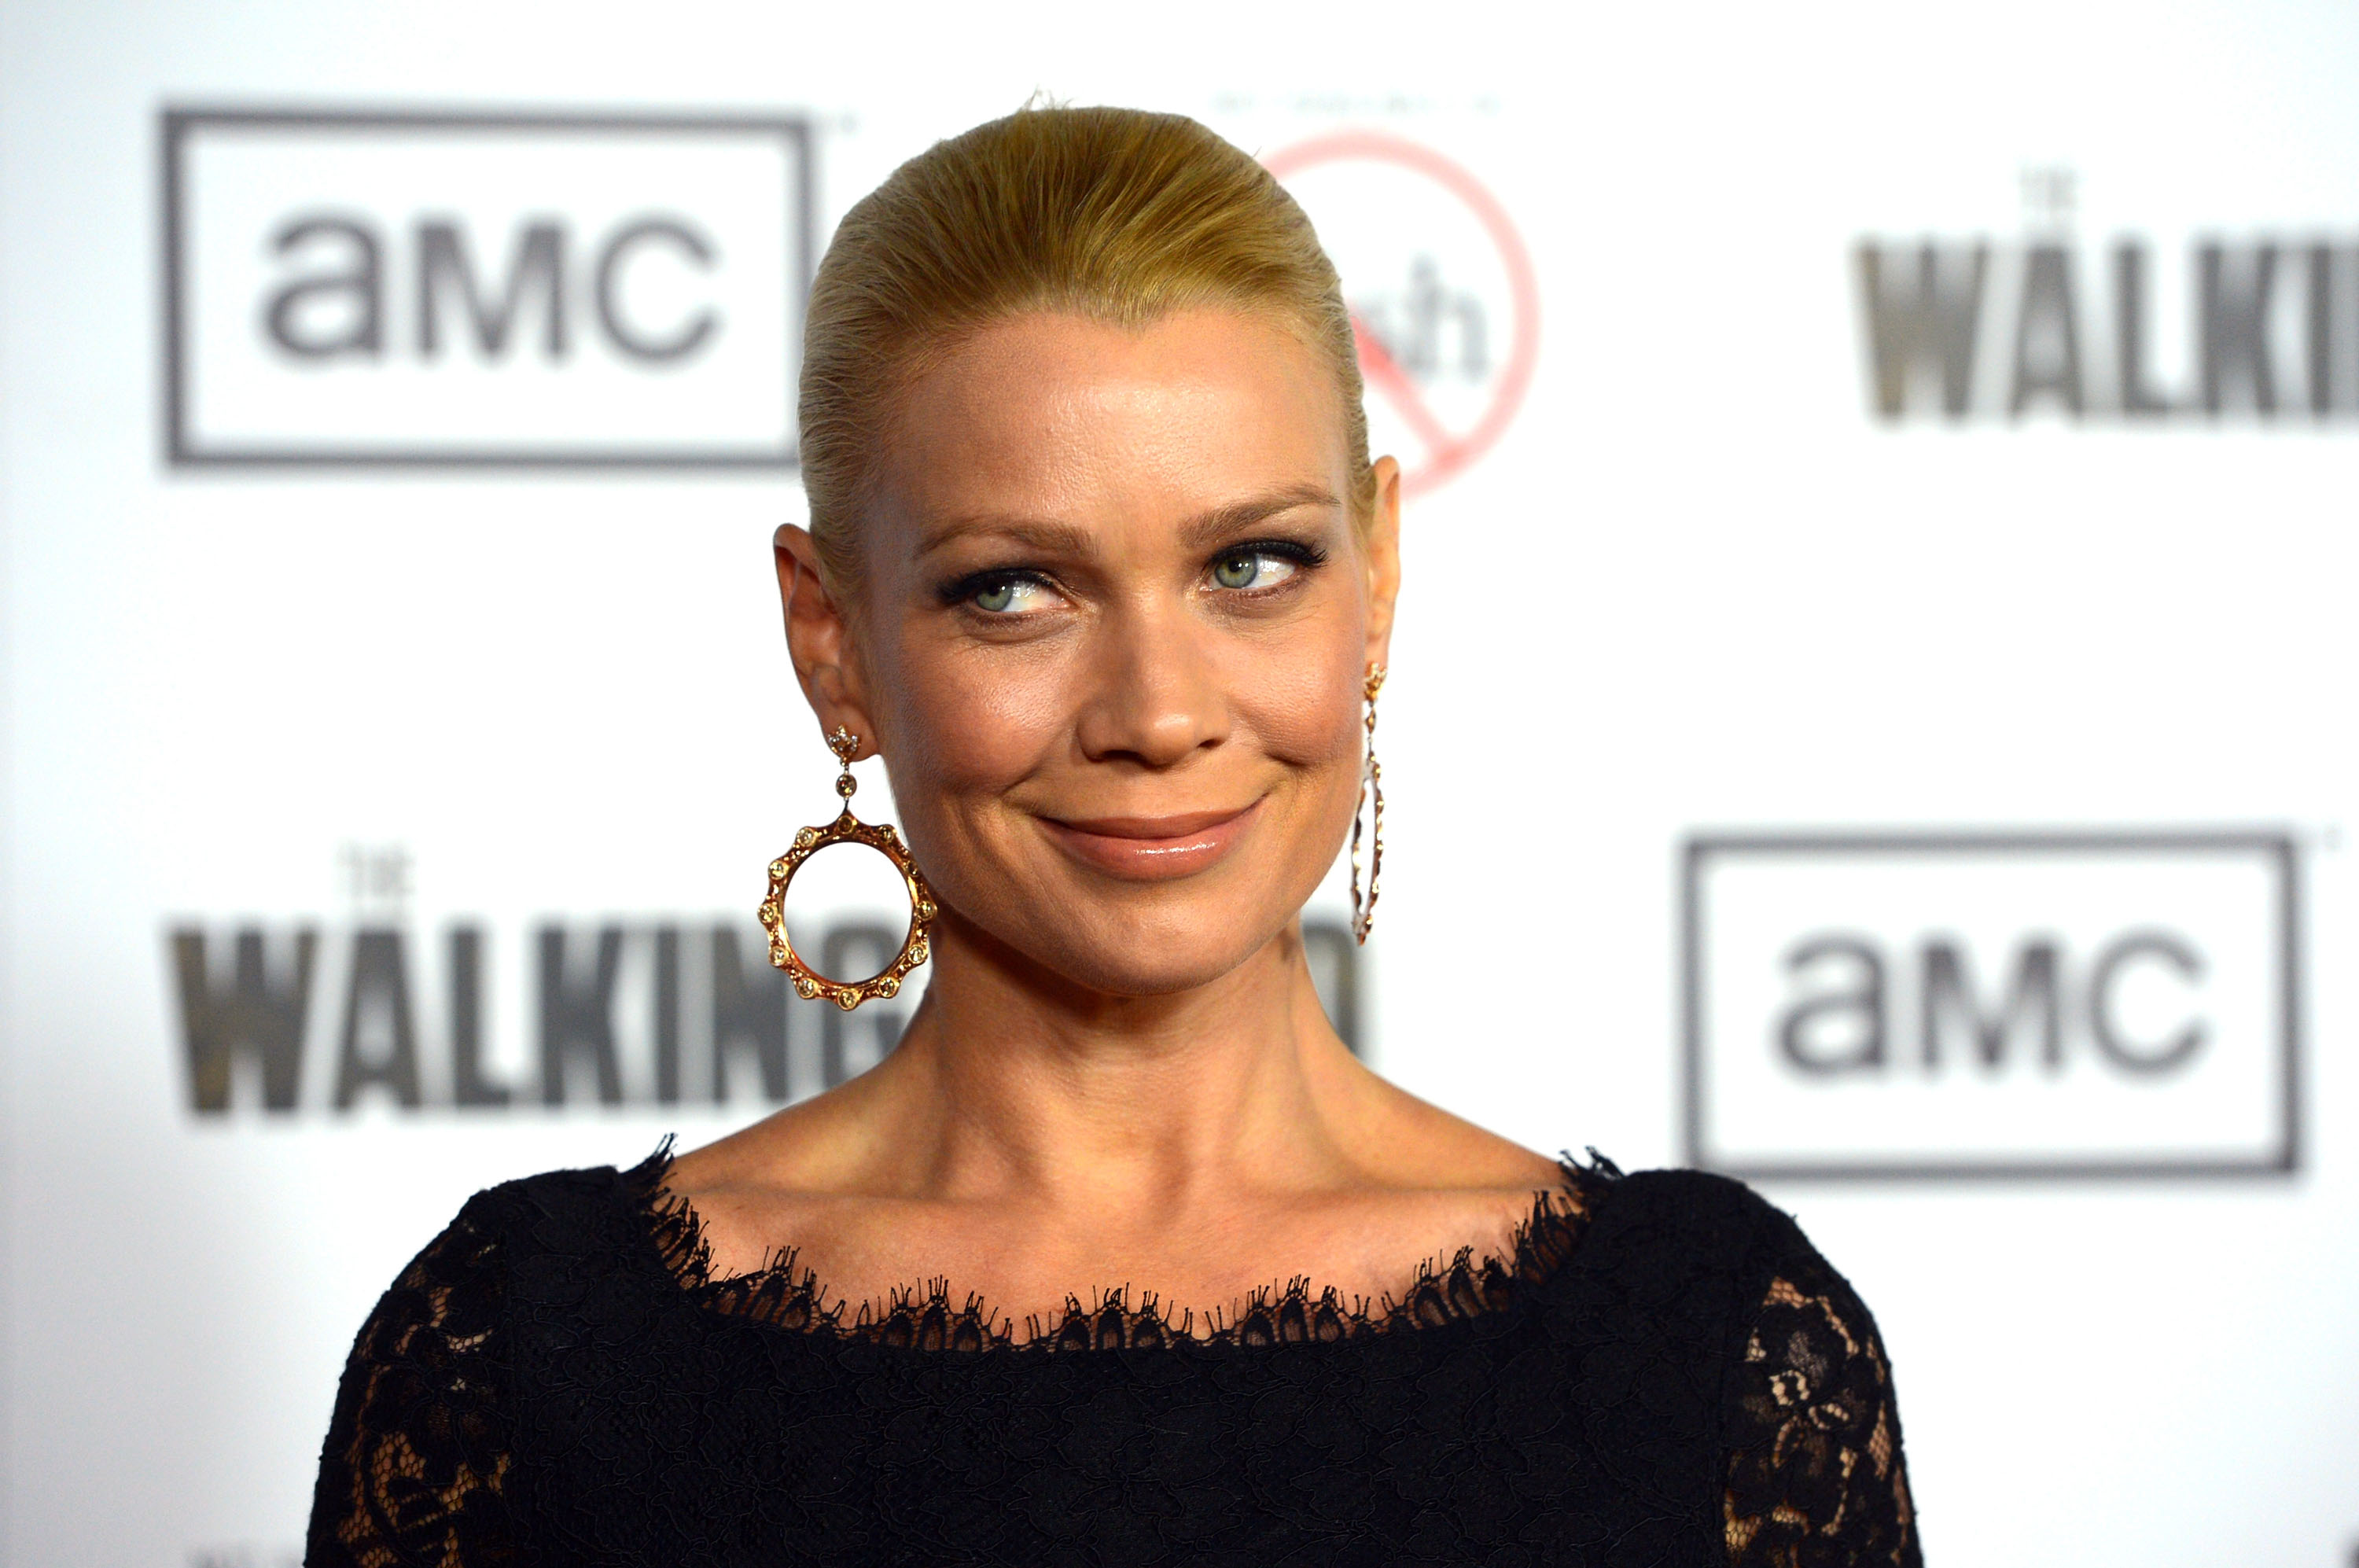 Laurie Holden nudes (99 foto and video), Ass, Hot, Instagram, lingerie 2018